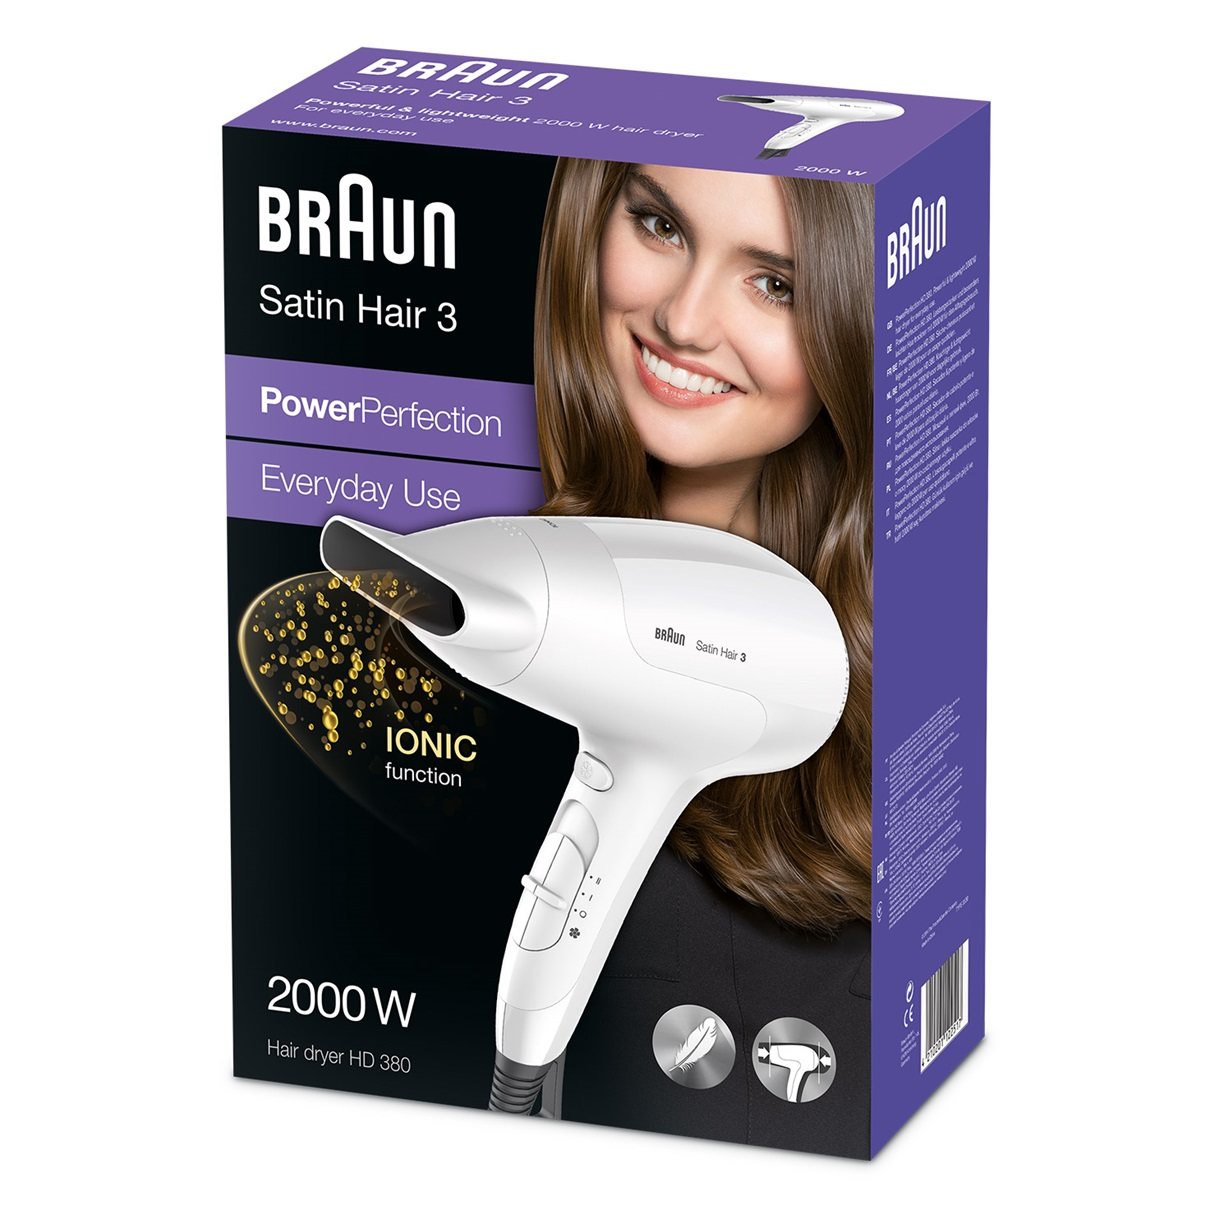 Satin Hair 3 PowerPerfection dryer HD380 packaging